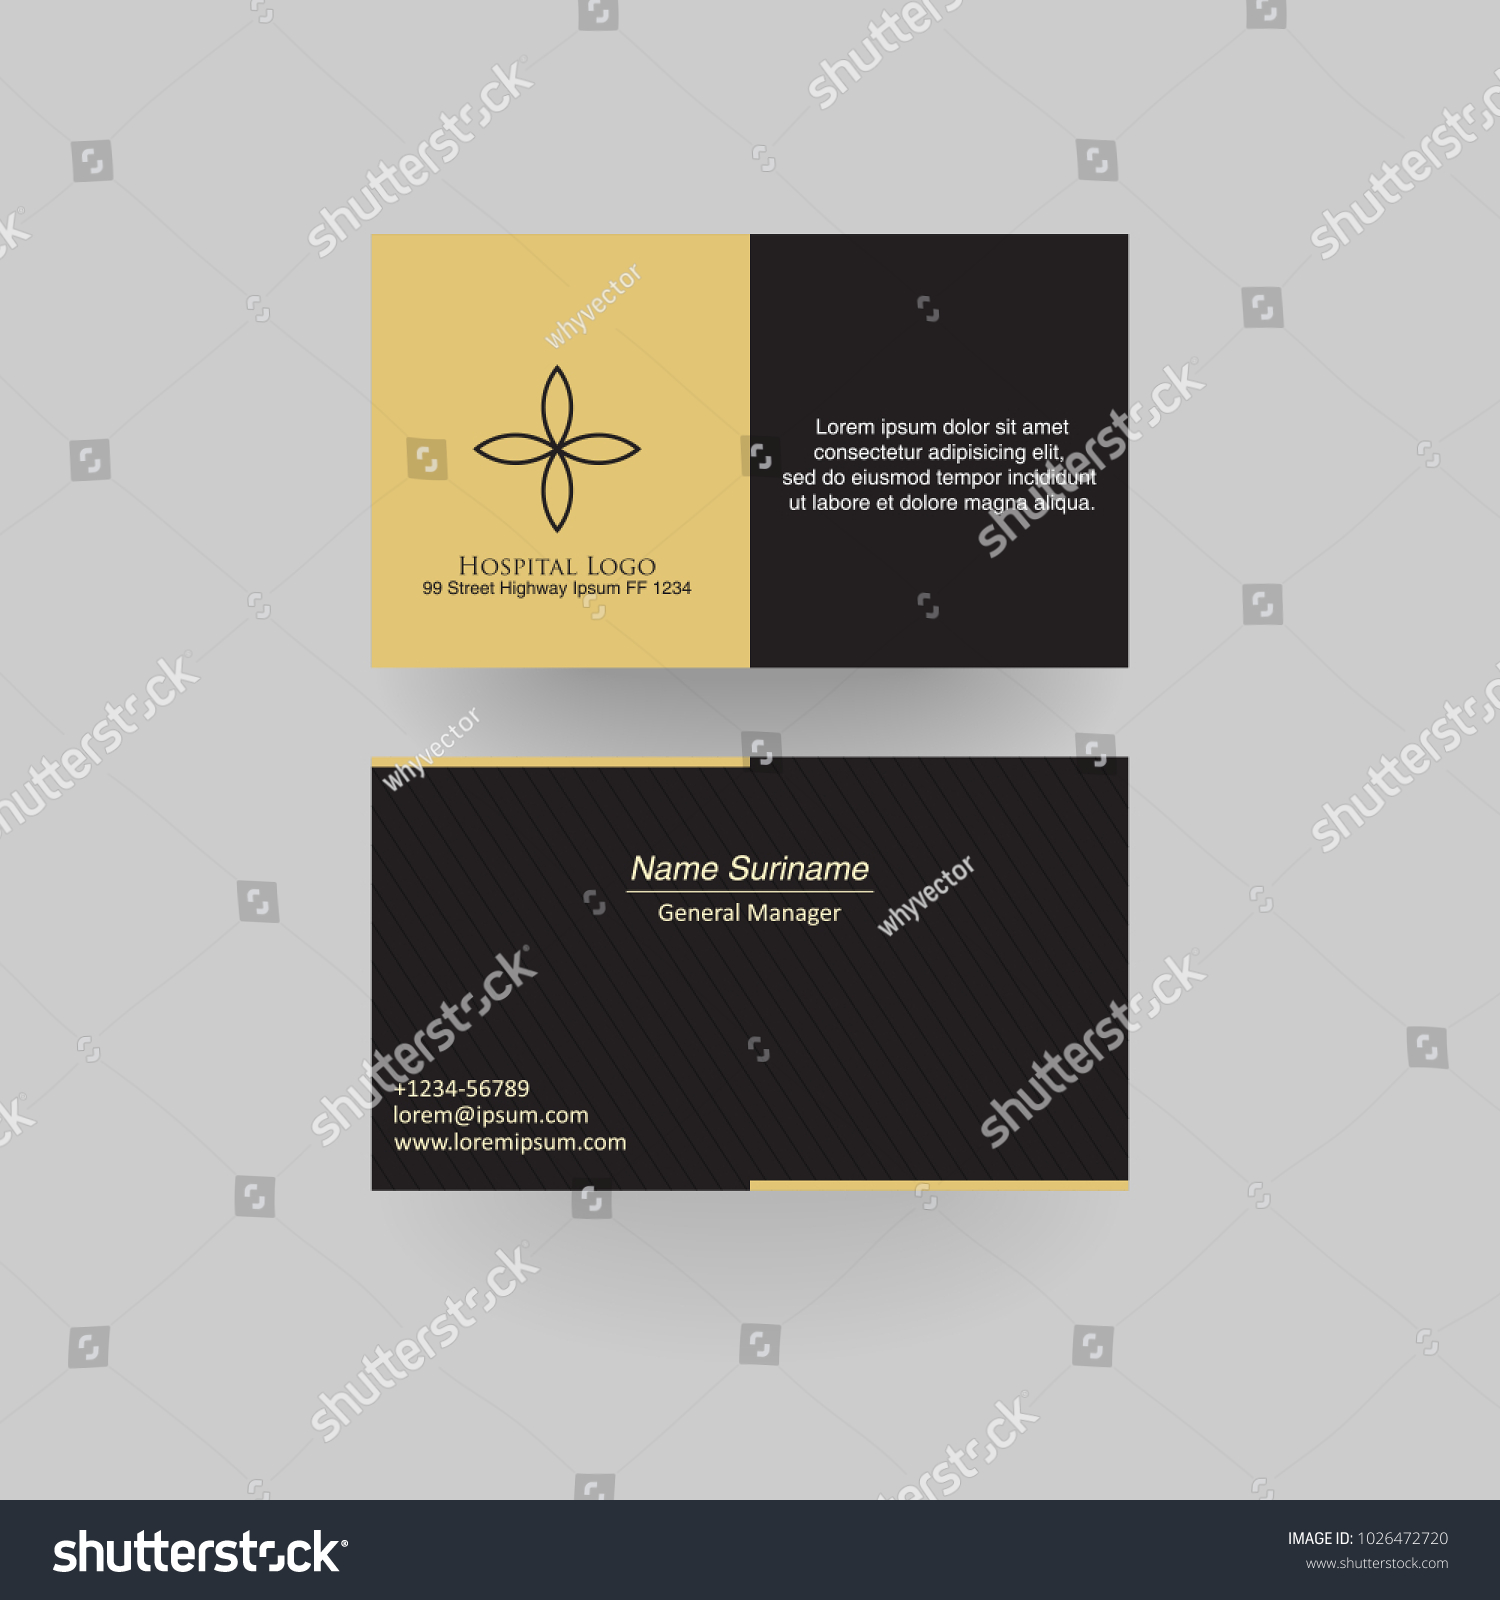 Hospital business card medical business card stock vector 1026472720 hospital business card medical business card stock vector 1026472720 shutterstock wajeb Image collections